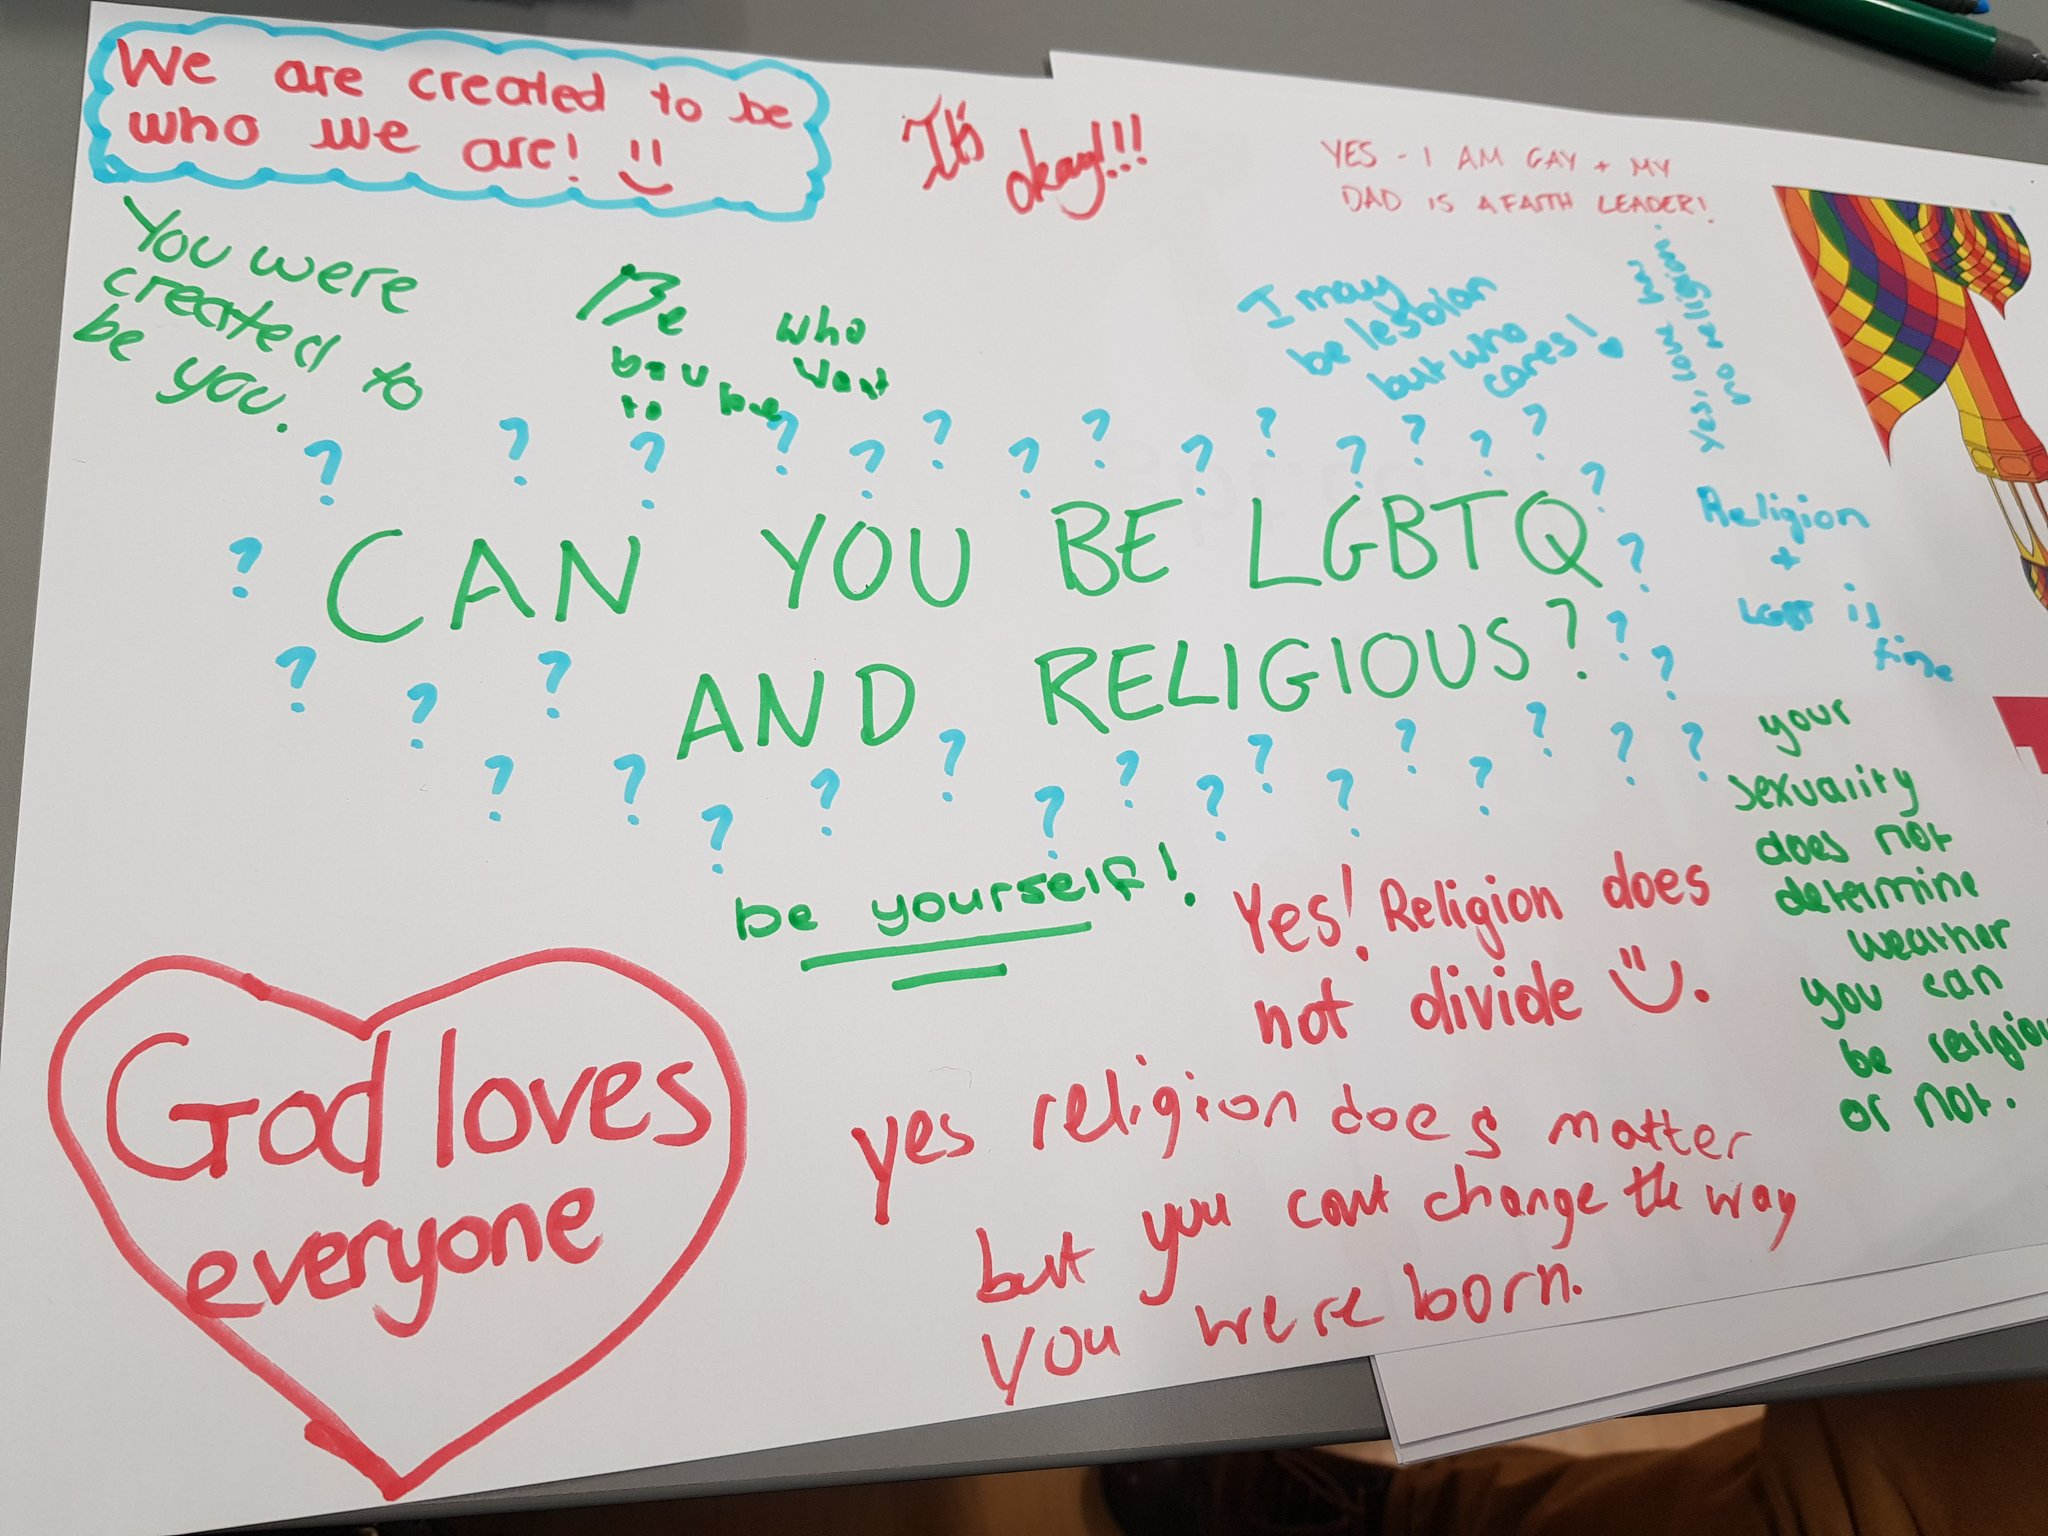 Hidayah works in schools to support children who are LGBTQI and Muslim